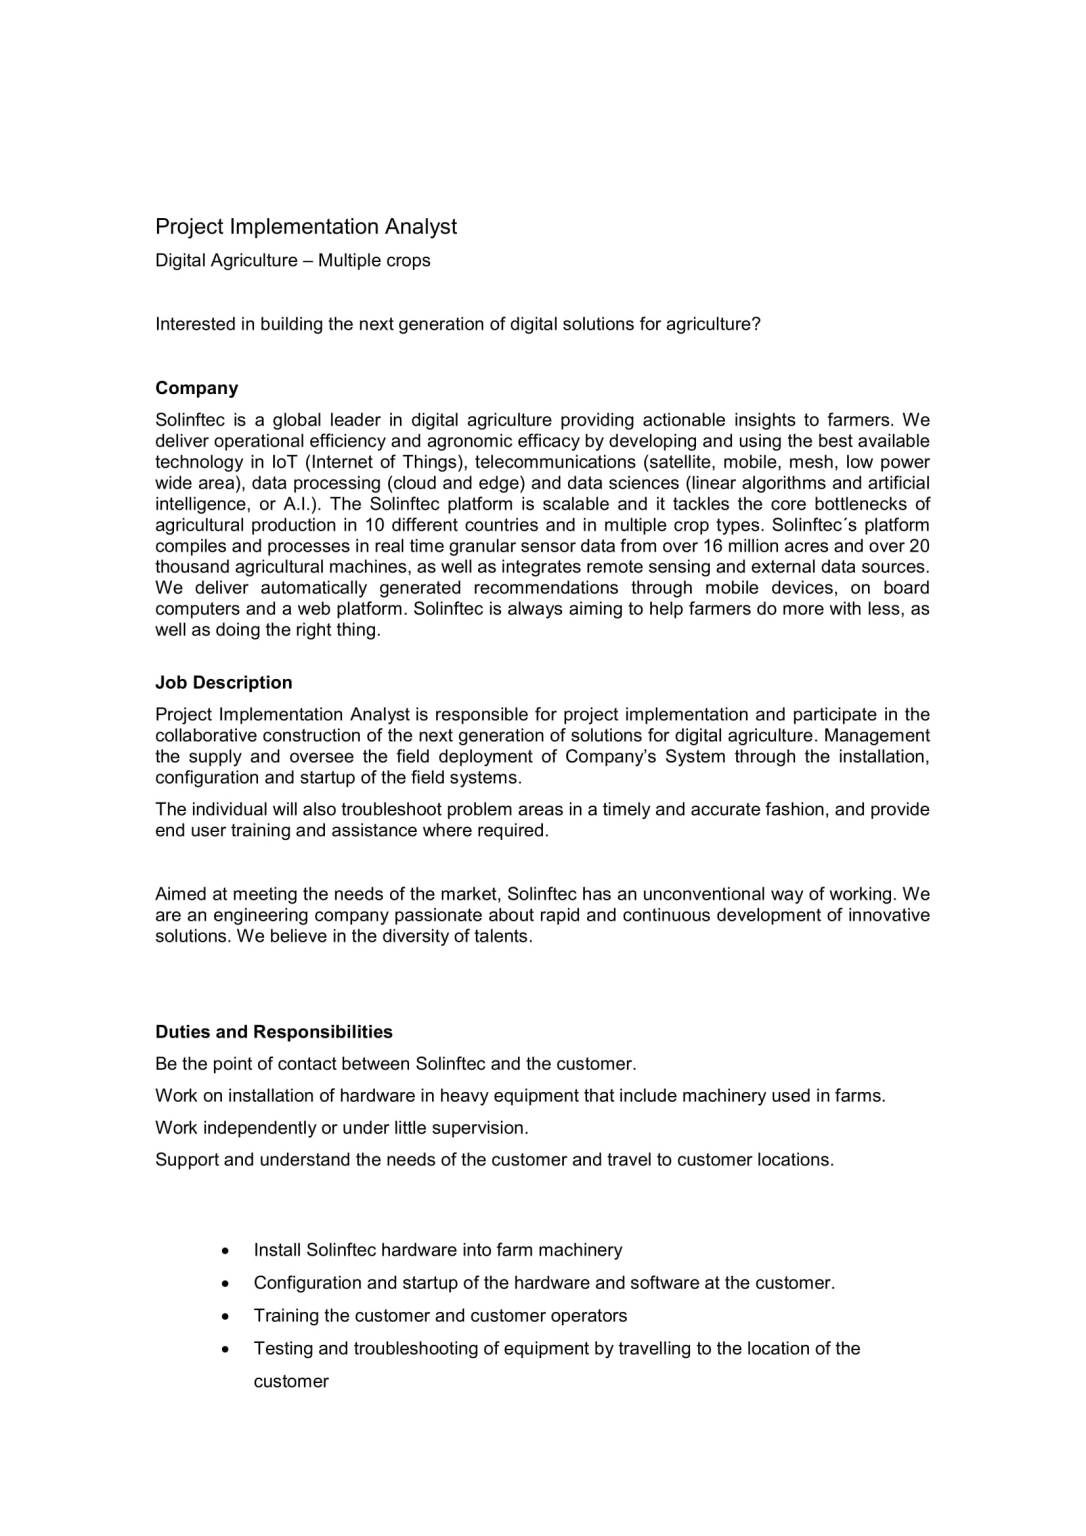 SOLINFTEC - Project Implementation Analyst-1